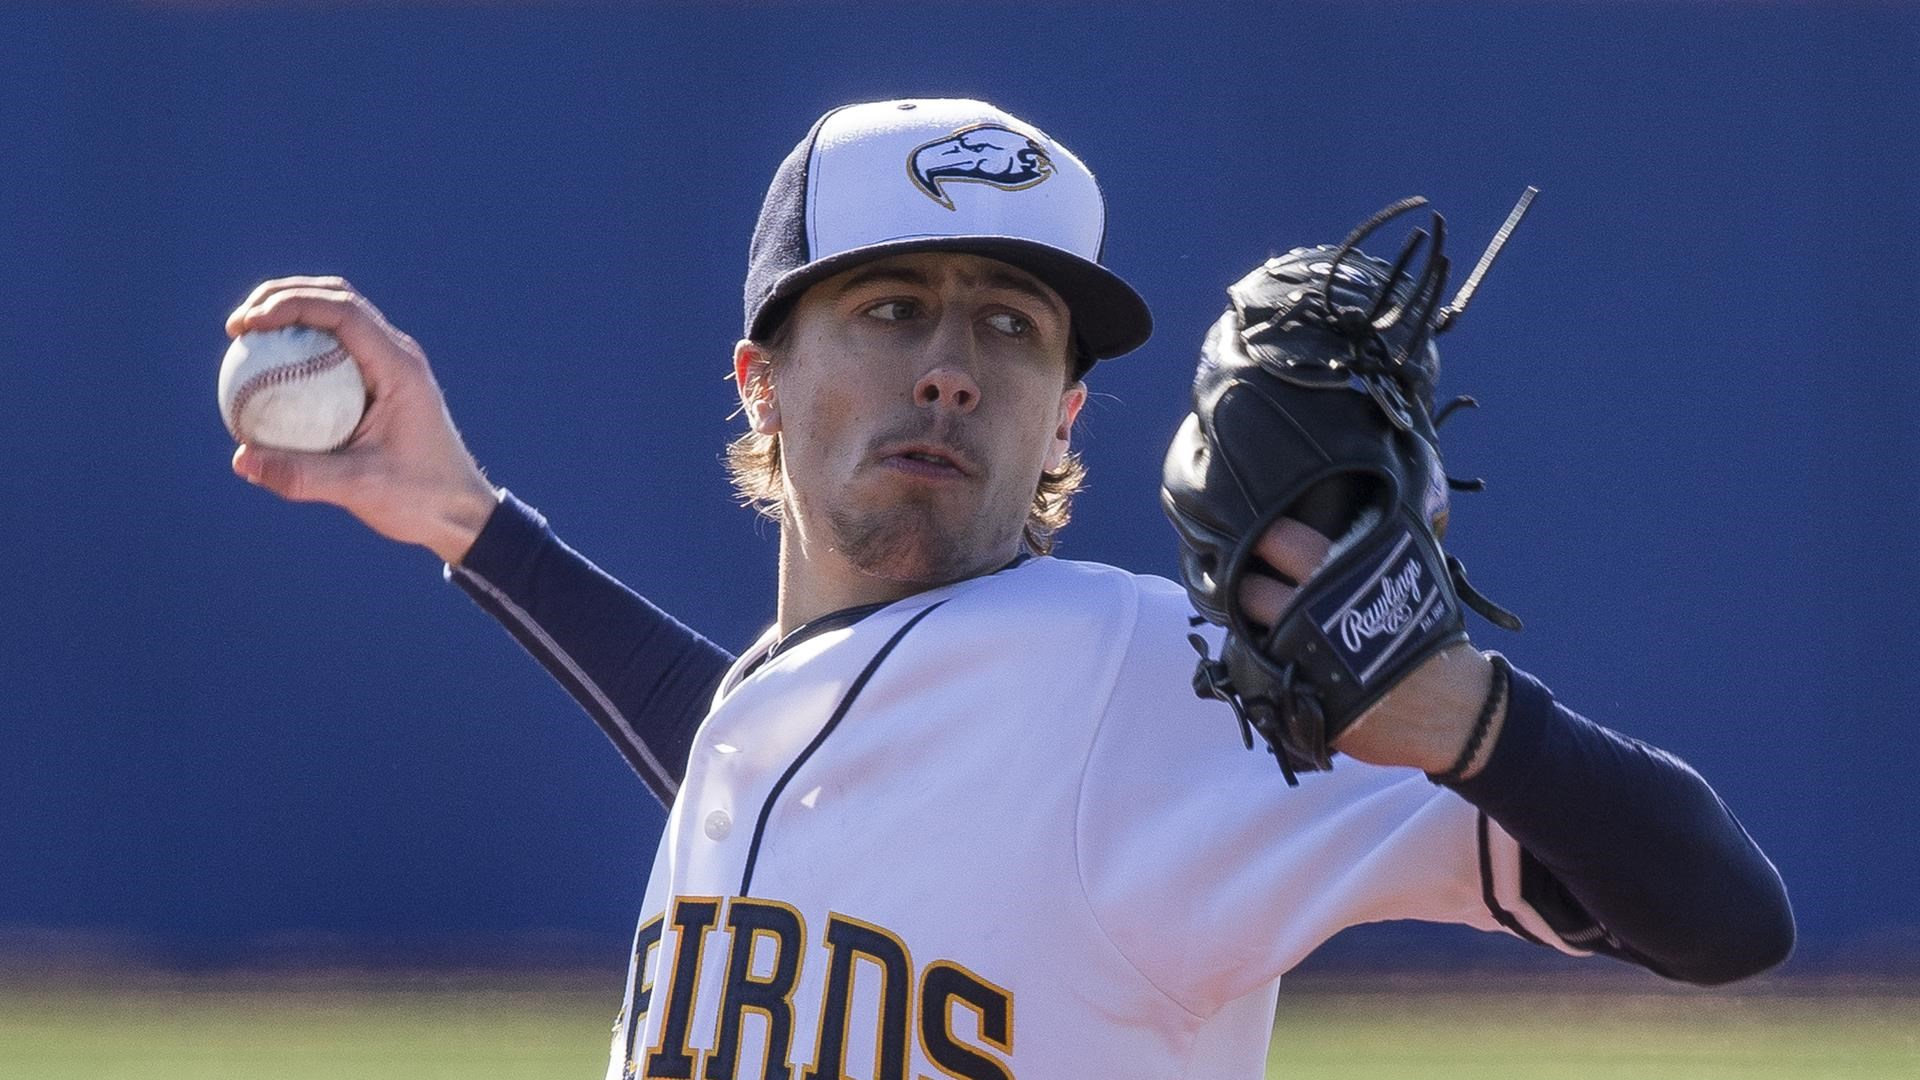 White Rock Tritons grad Barry Caine (Surrey, B.C.) tossed 3 2/3 scoreless innings in two appearances for the UBC Thunderbirds. Photo: UBC Athletics